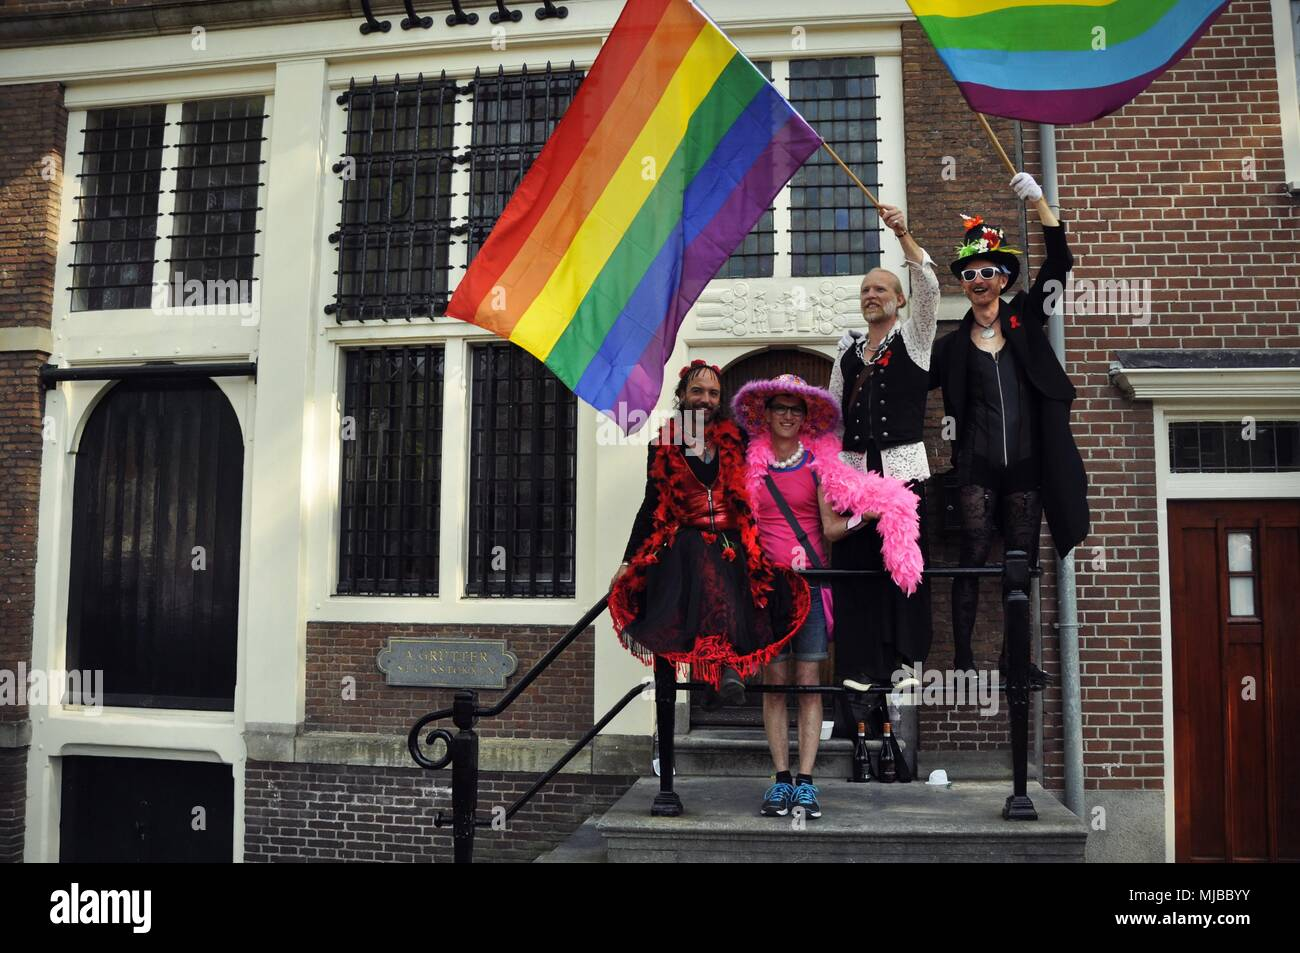 Amsterdam, Netherlands:  Four people in costumes standing on a balcony, waiving rainbow flags at the traditional Amsterdam gay pride event. - Stock Image